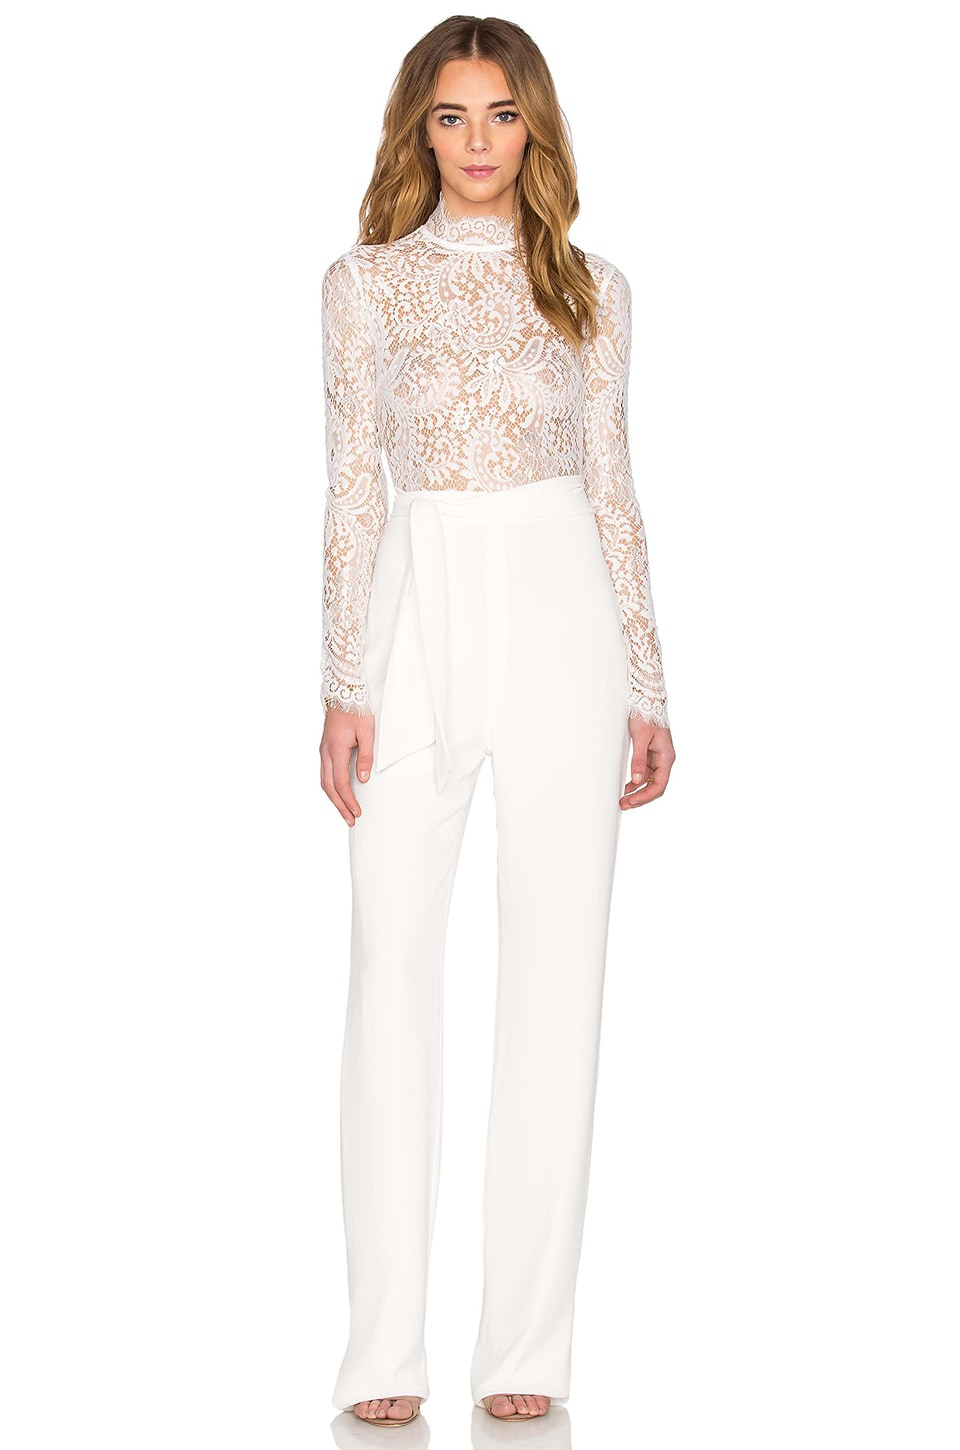 Misha Collection Allegra Lace Pantsuit in Milk